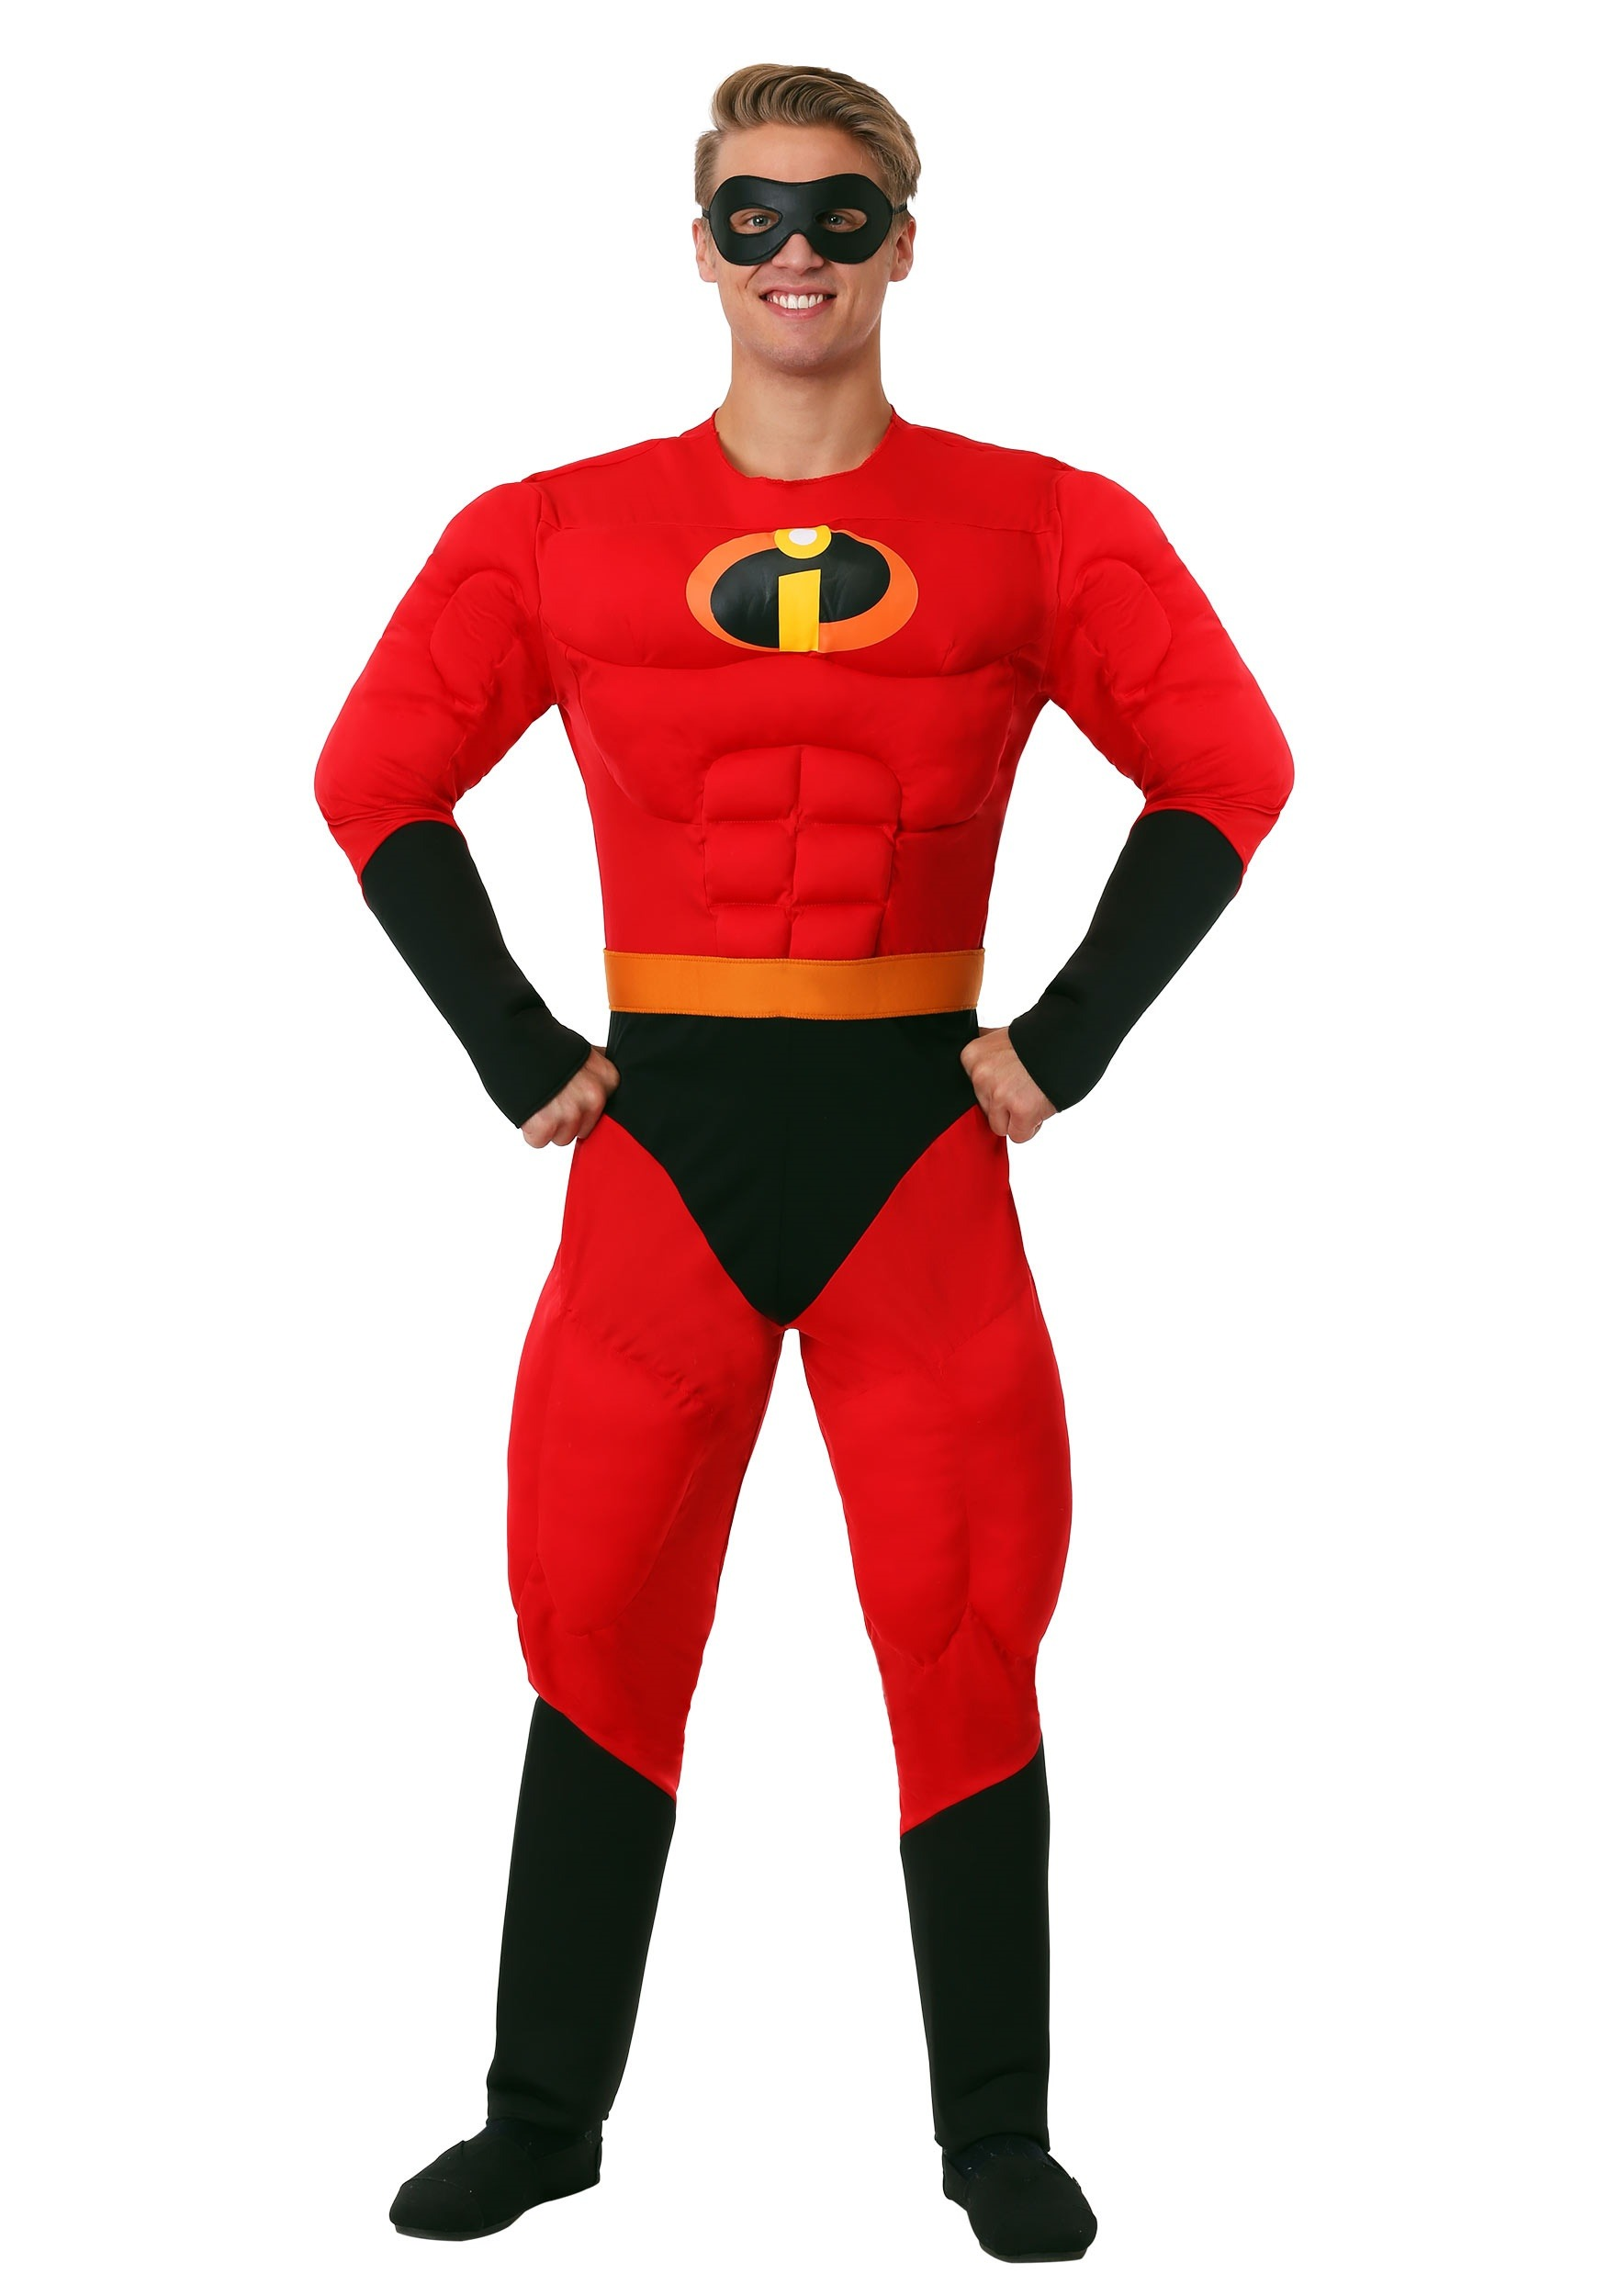 Men's Super Mr. Incredible Costume from The Incredibles